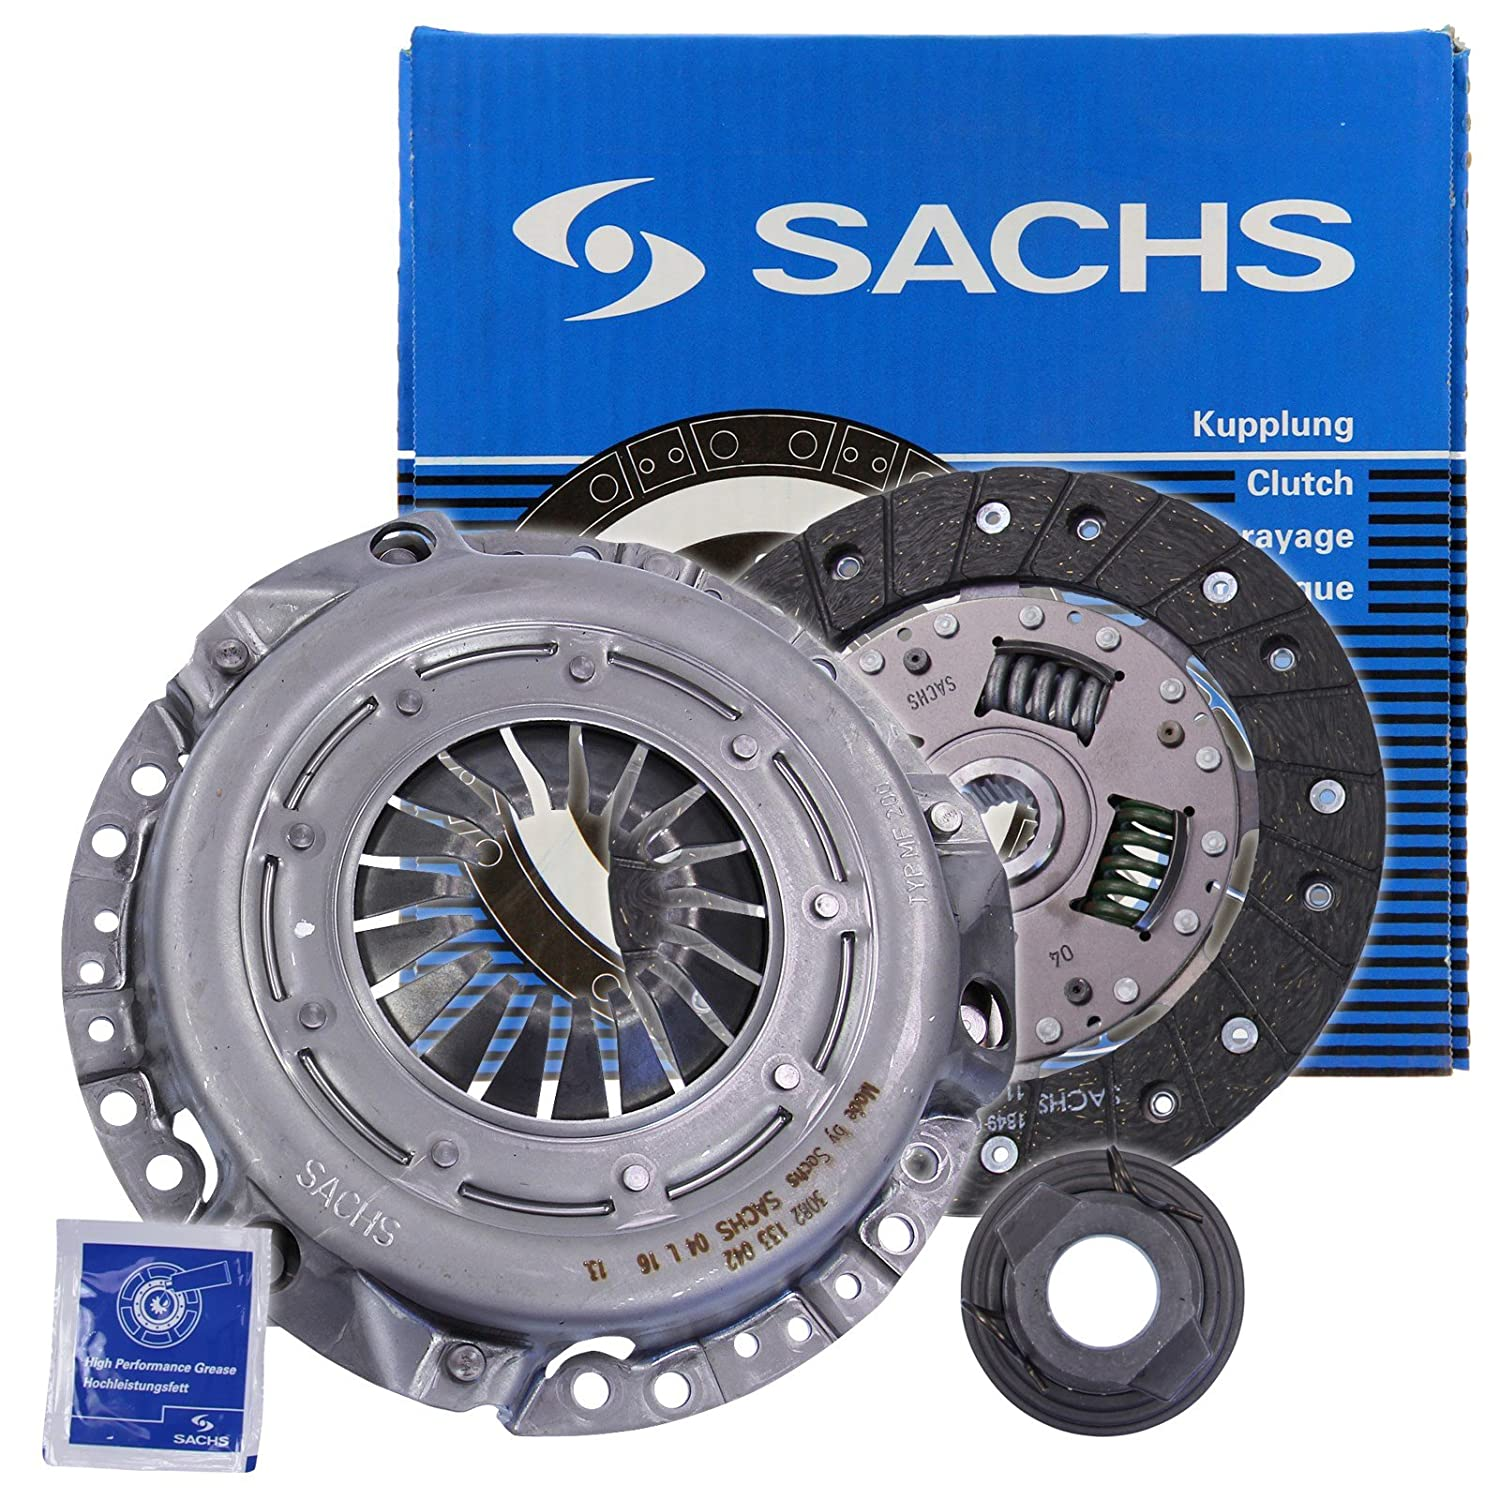 Sachs 3000 240 001 Kit de embrague